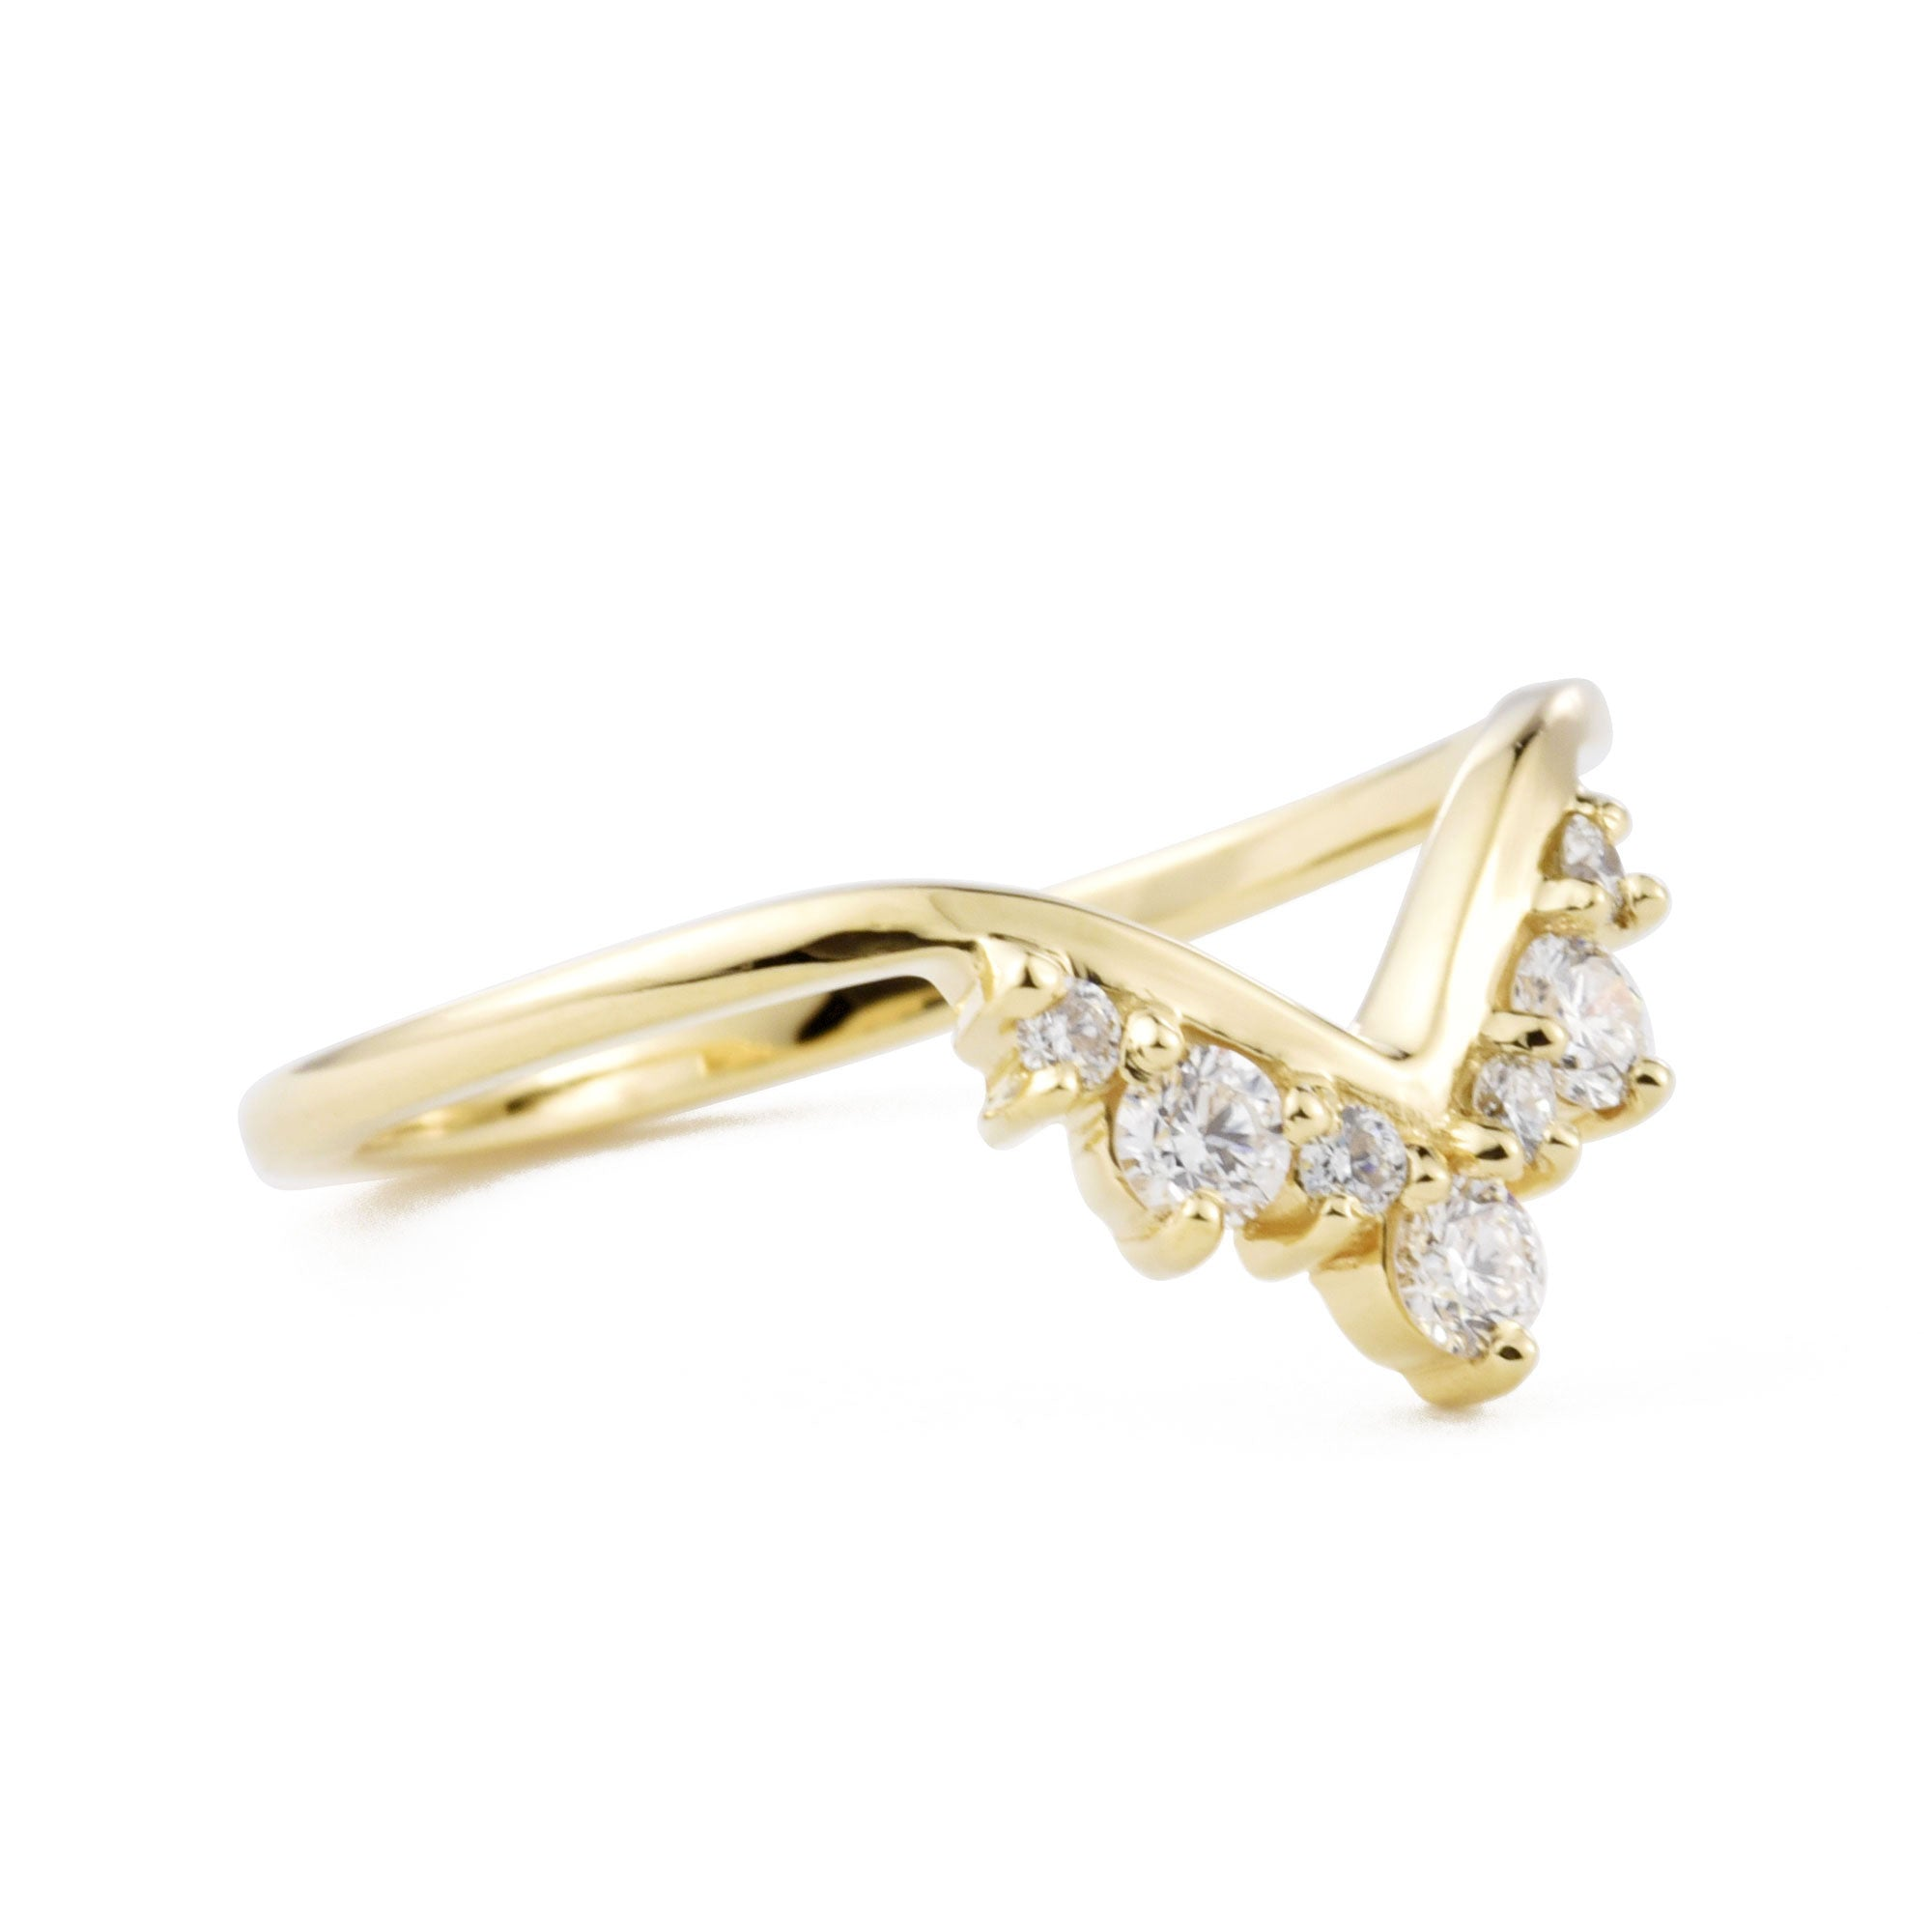 Tiara Diamond Nova Band shown from the front in yellow gold